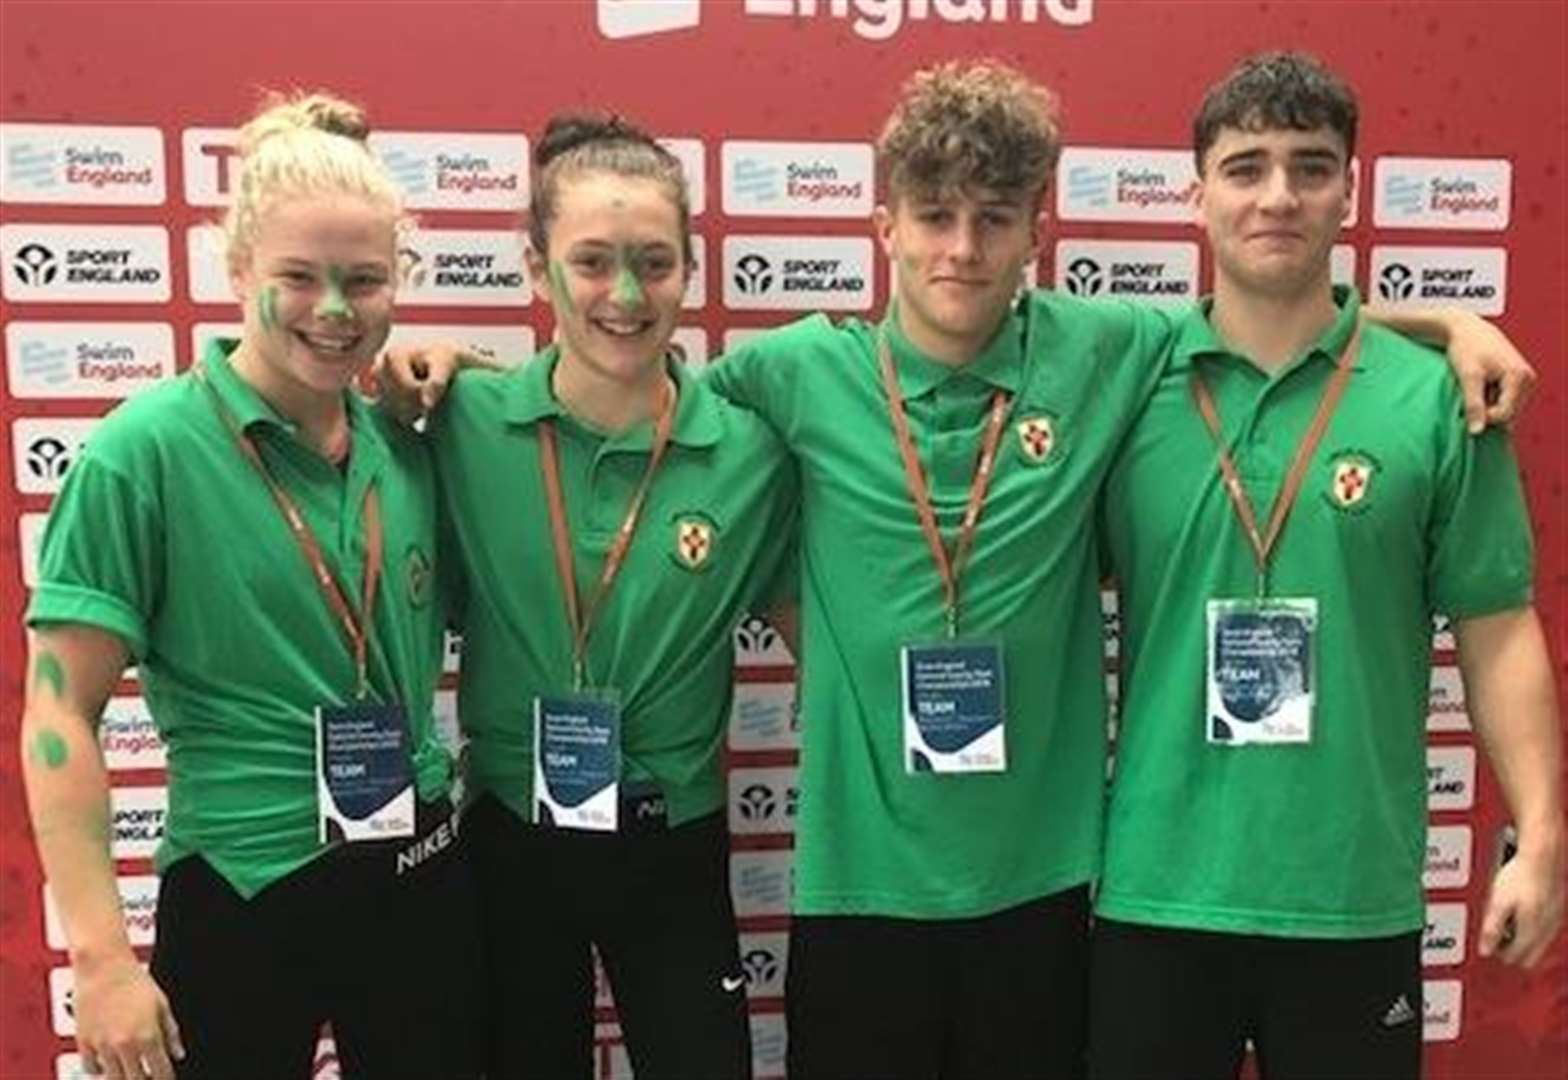 SWIMMING: Louis smashes 17-year-old club record as quartet shine for county